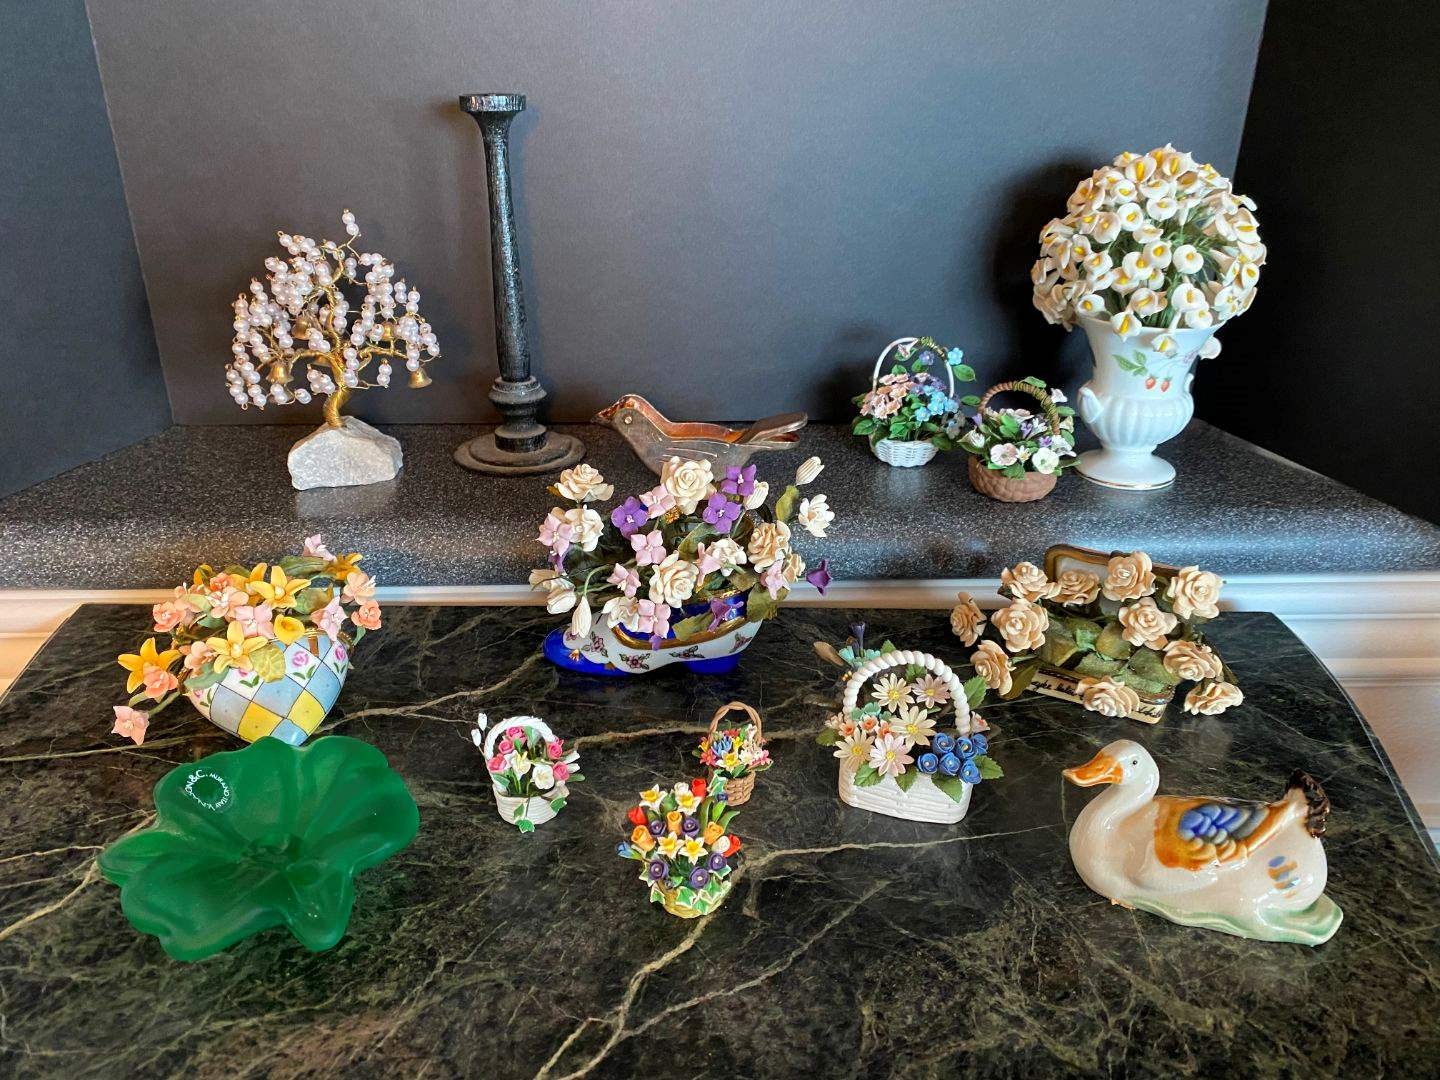 Lot # 65 - V. Nason & C. Murano Glass Flower, Small Trinket Boxes w/Clay Flowers & More.. (main image)